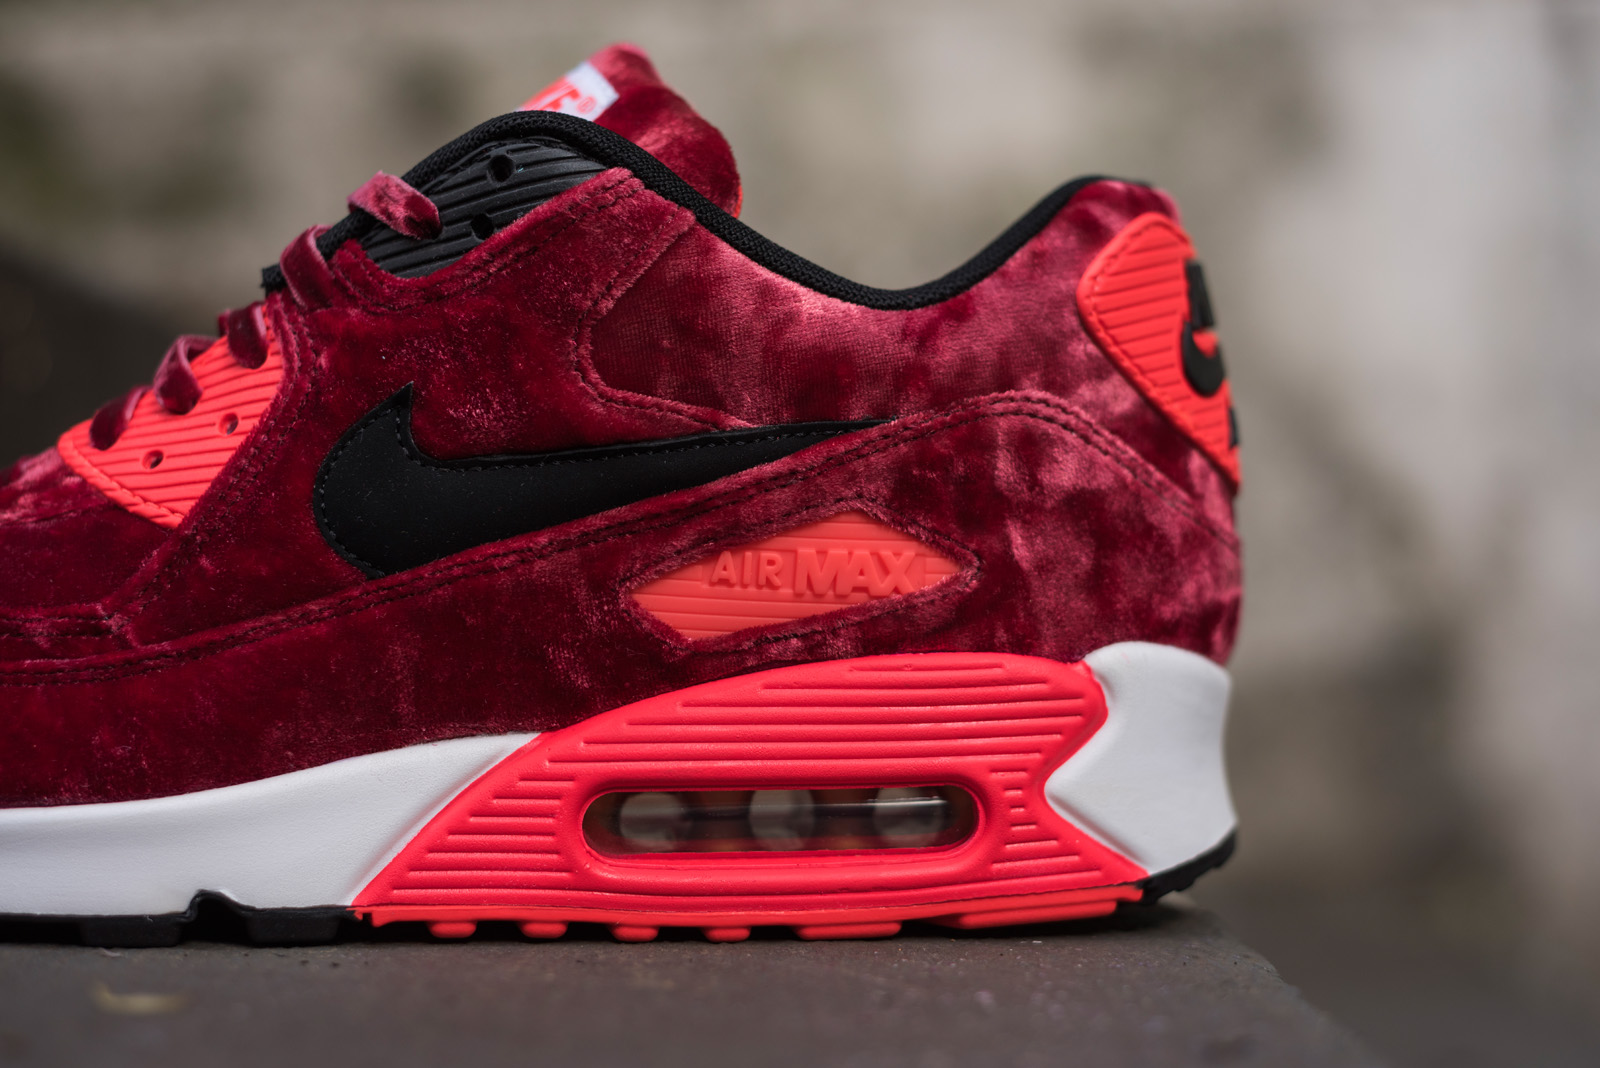 f3cc1a7f2978 greece nike air max 90 25th anniversary infrared velvet sneakersbr 32a93  adf16